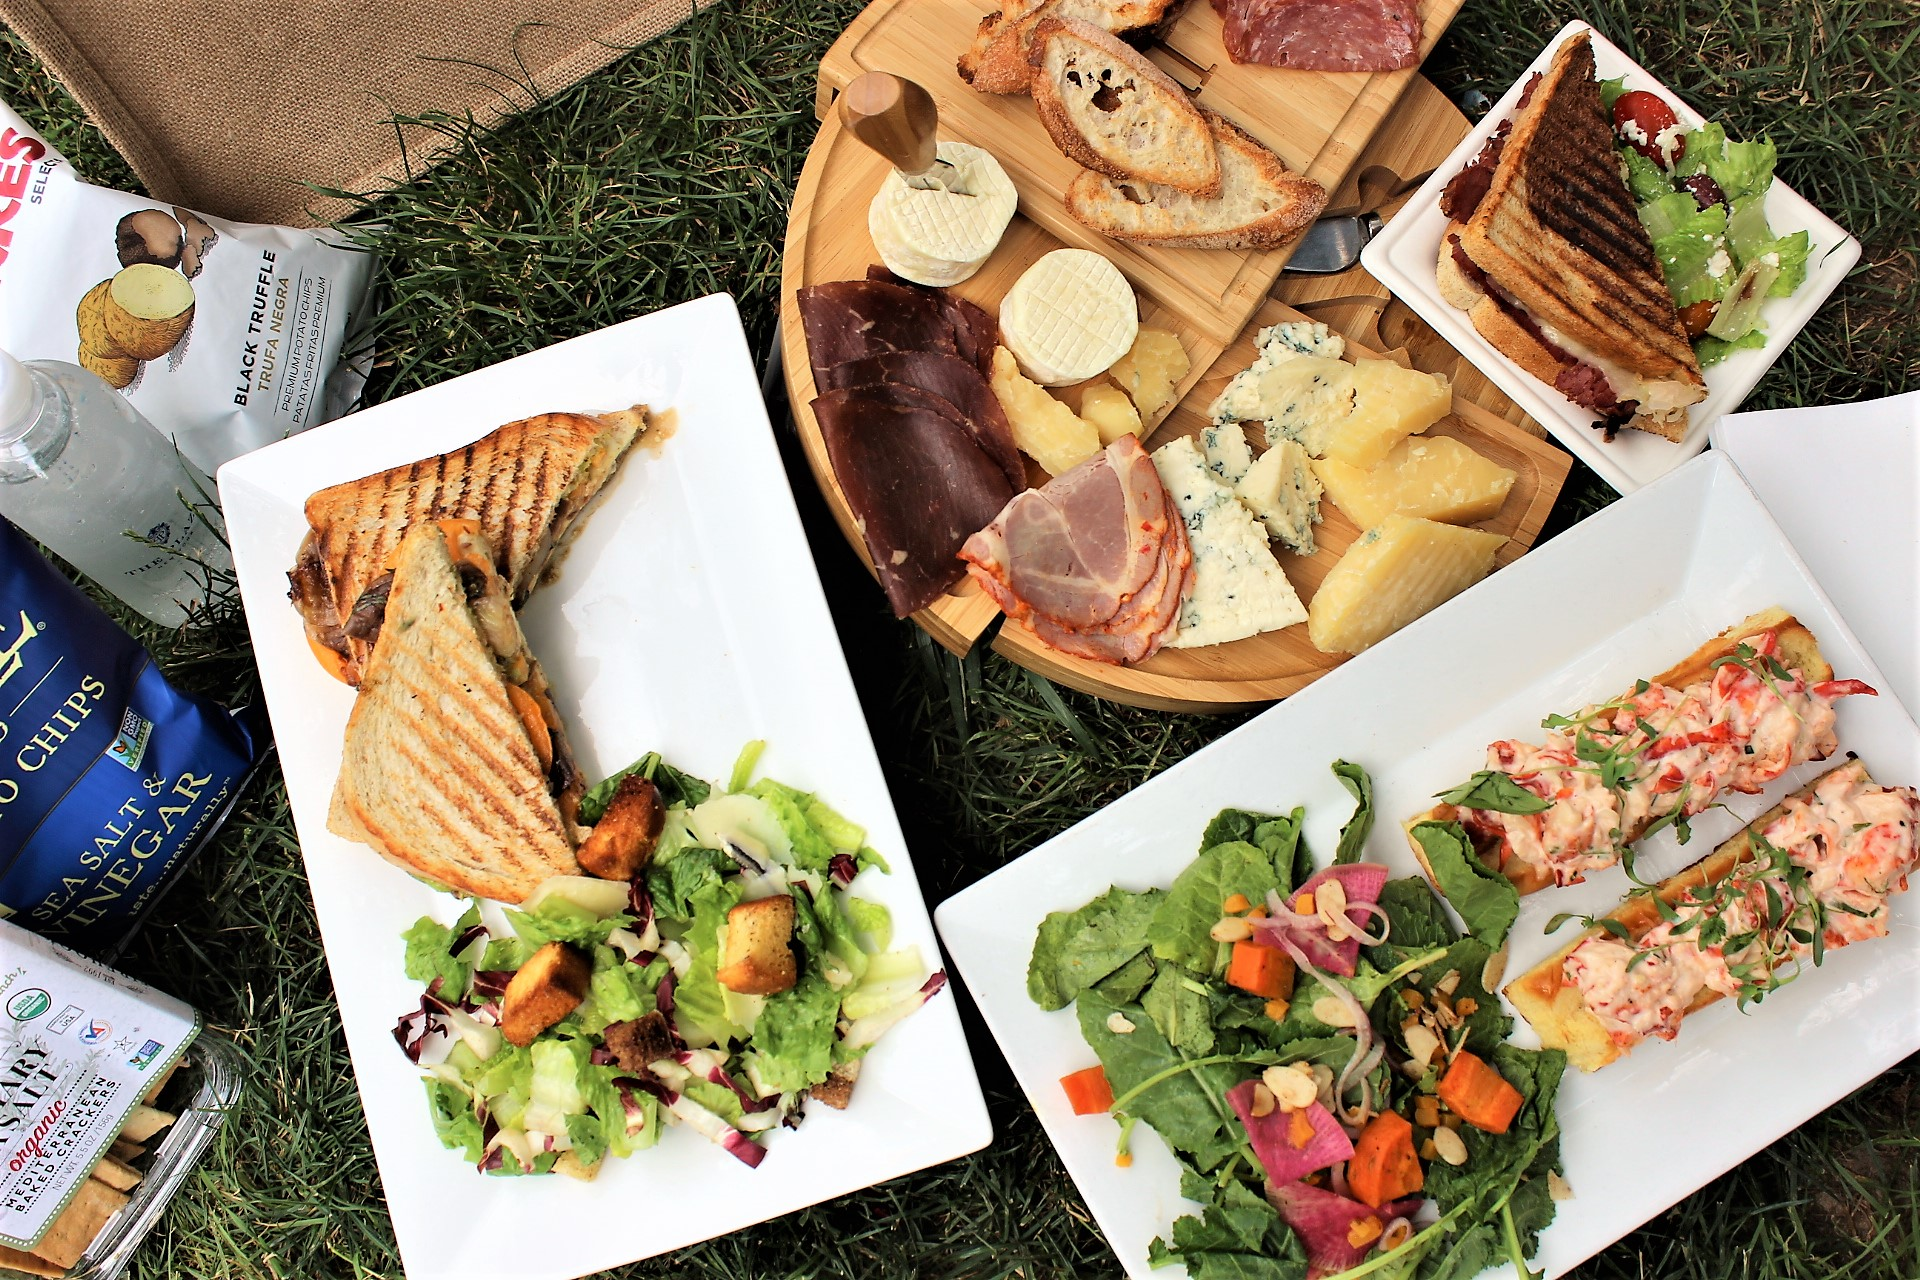 How to Pack a Better Picnic, According to the Plaza's Picnic Concierge